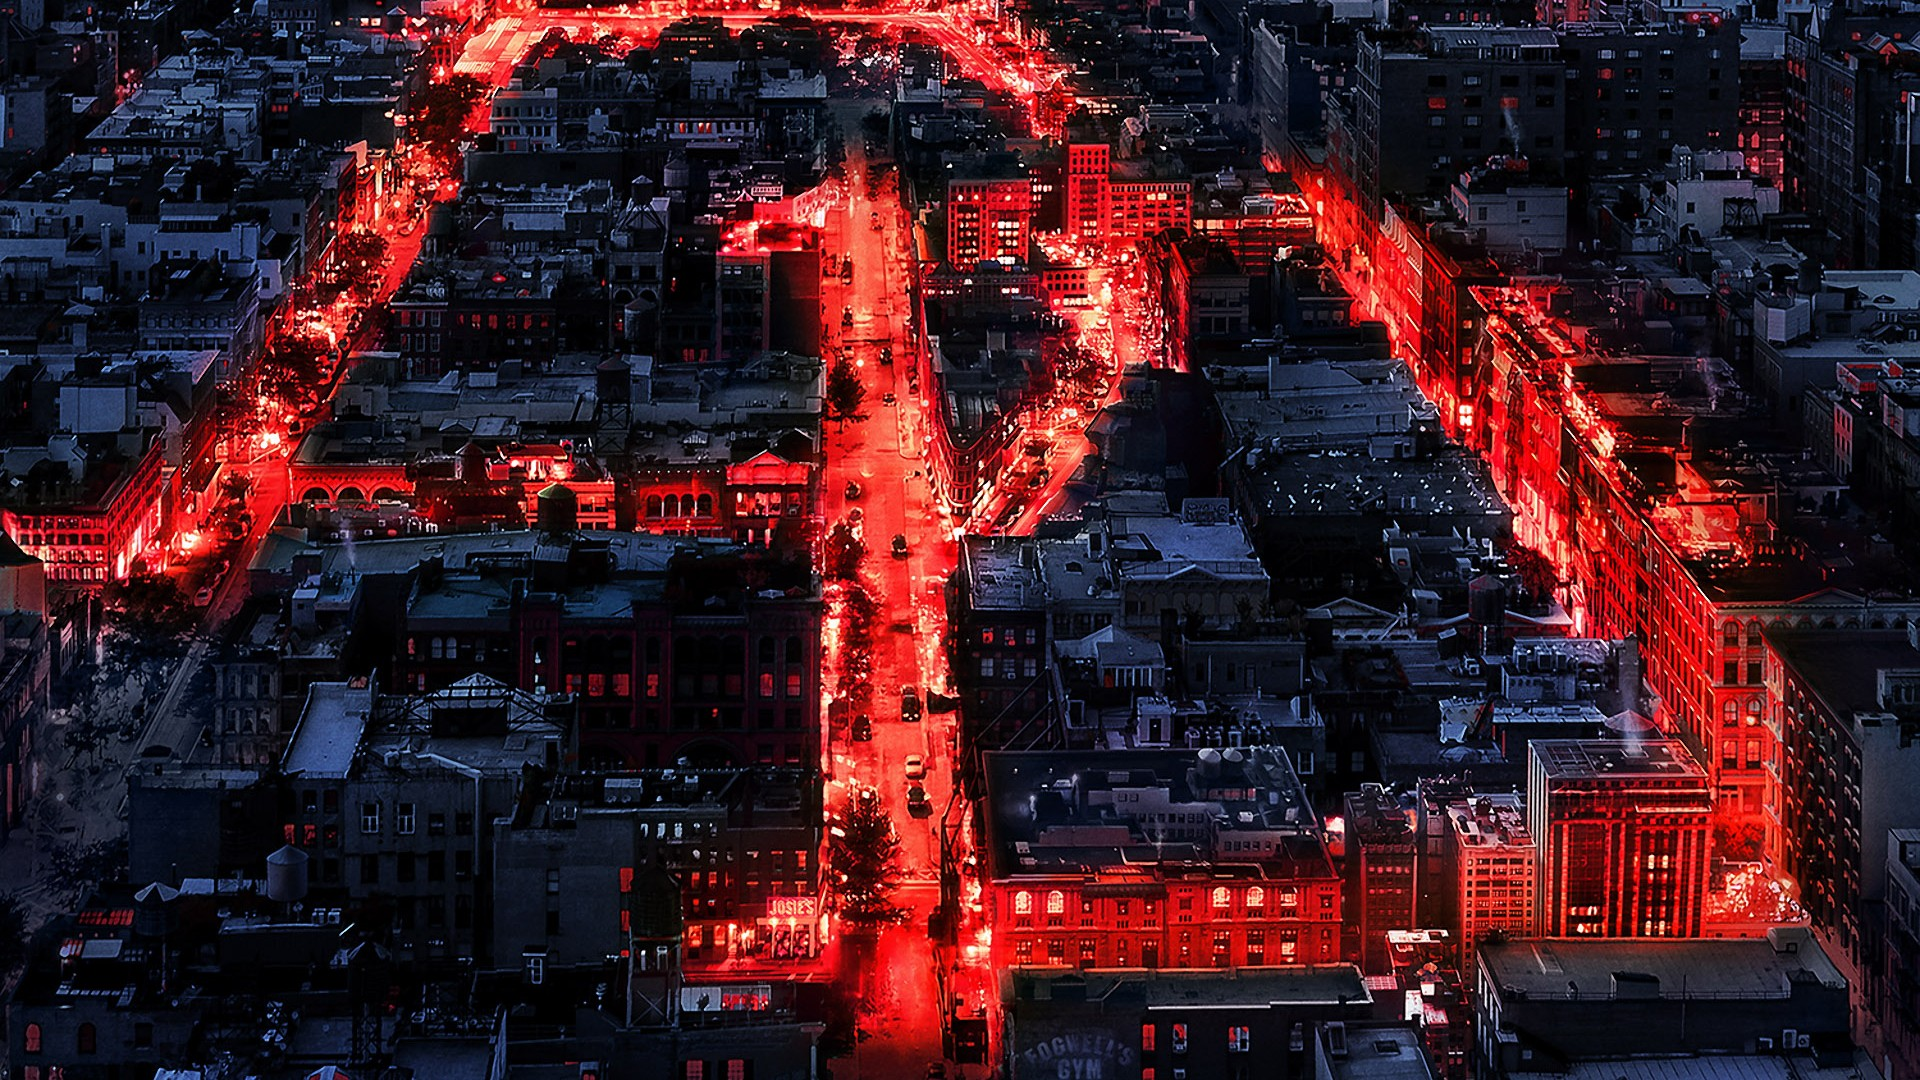 Download Marvel Netflix Tv Series Marvels Daredevil HD Wallpaper 1920x1080